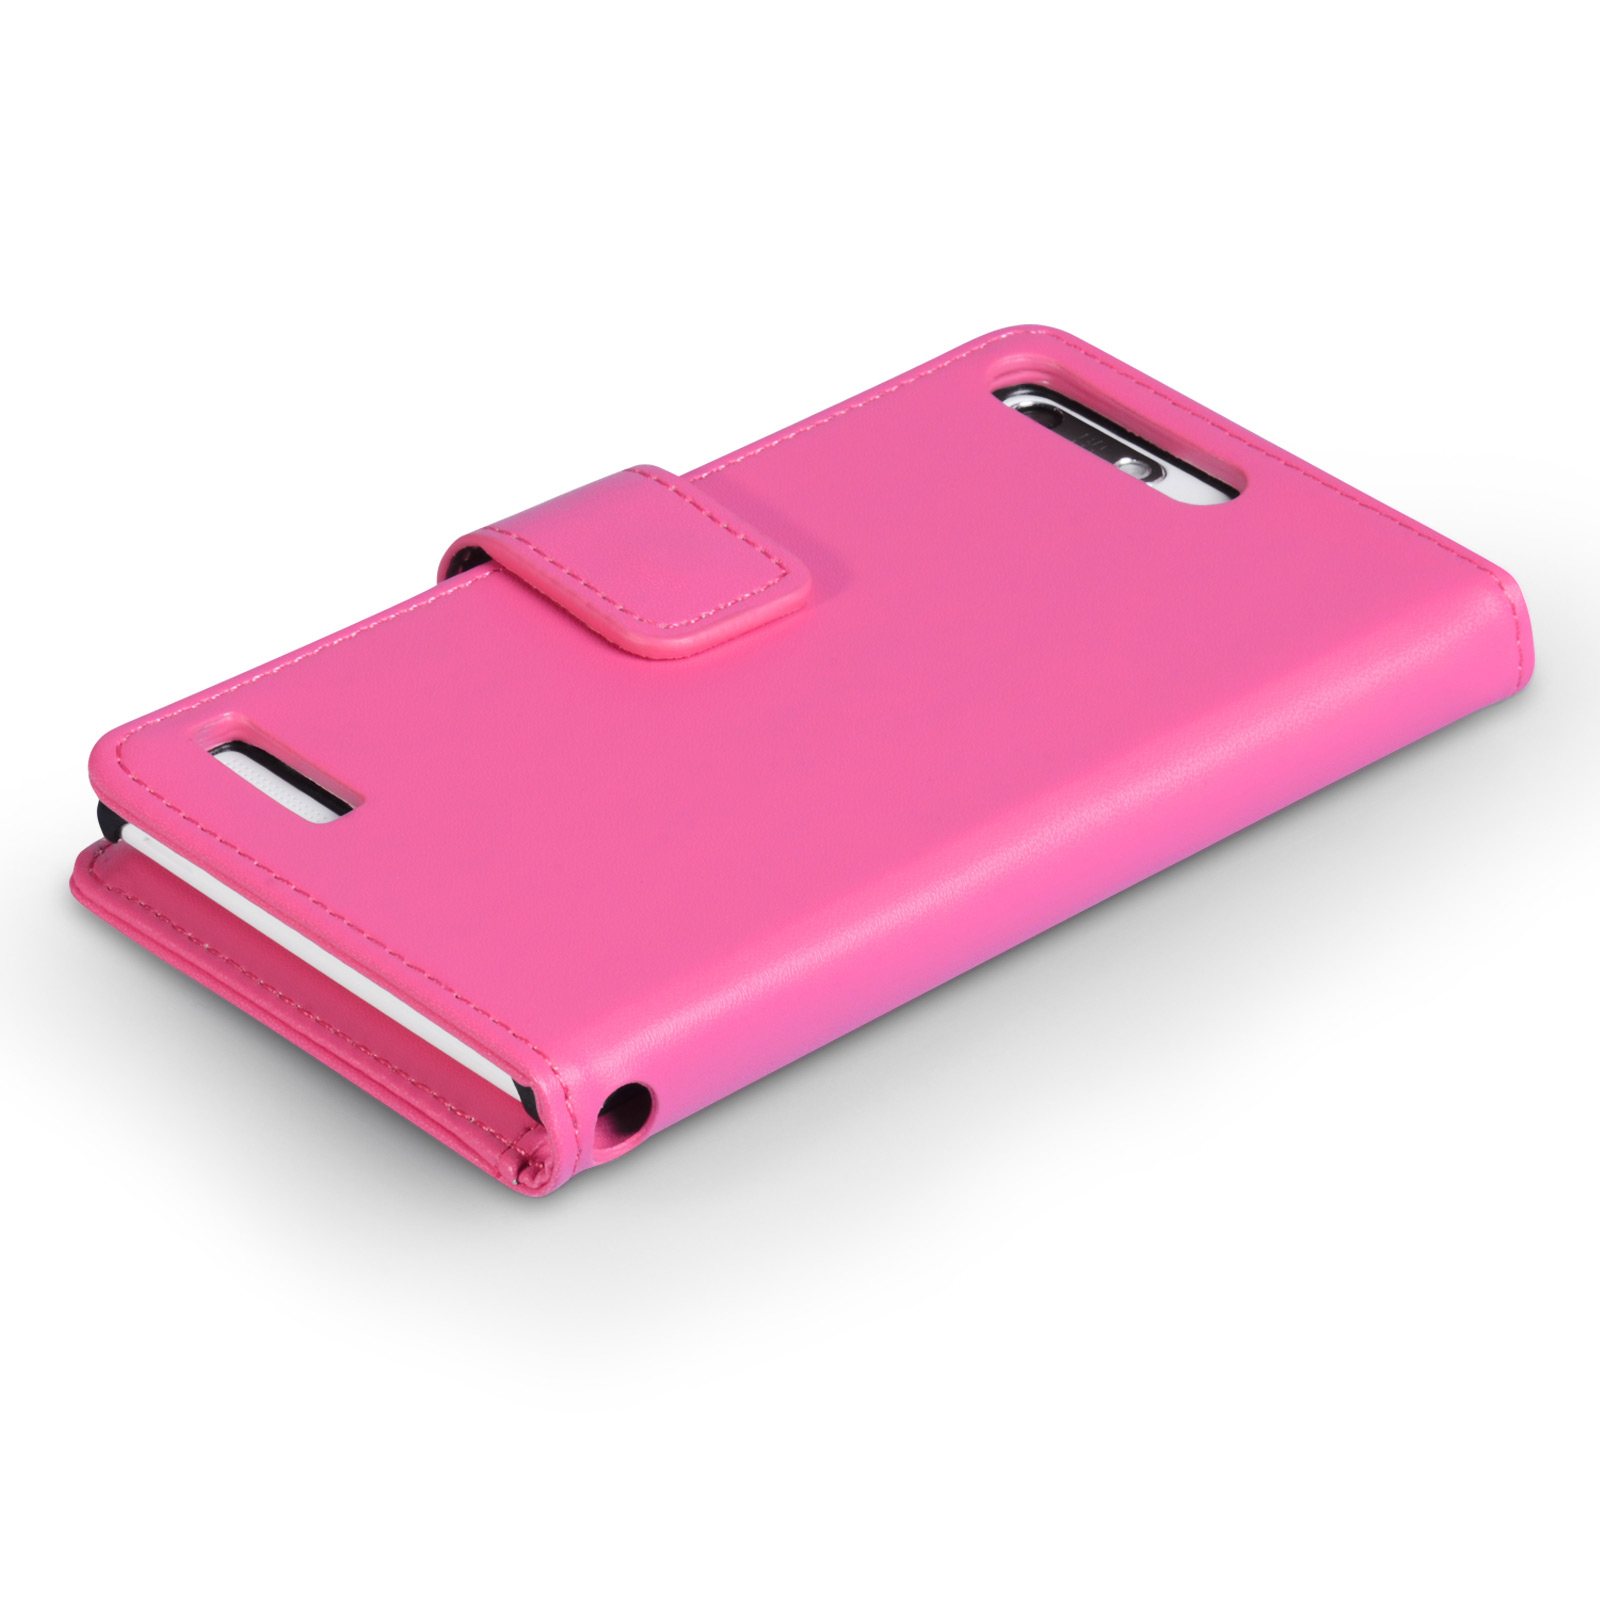 YouSave Huawei Ascend G6 Leather-Effect Wallet Case - Hot Pink